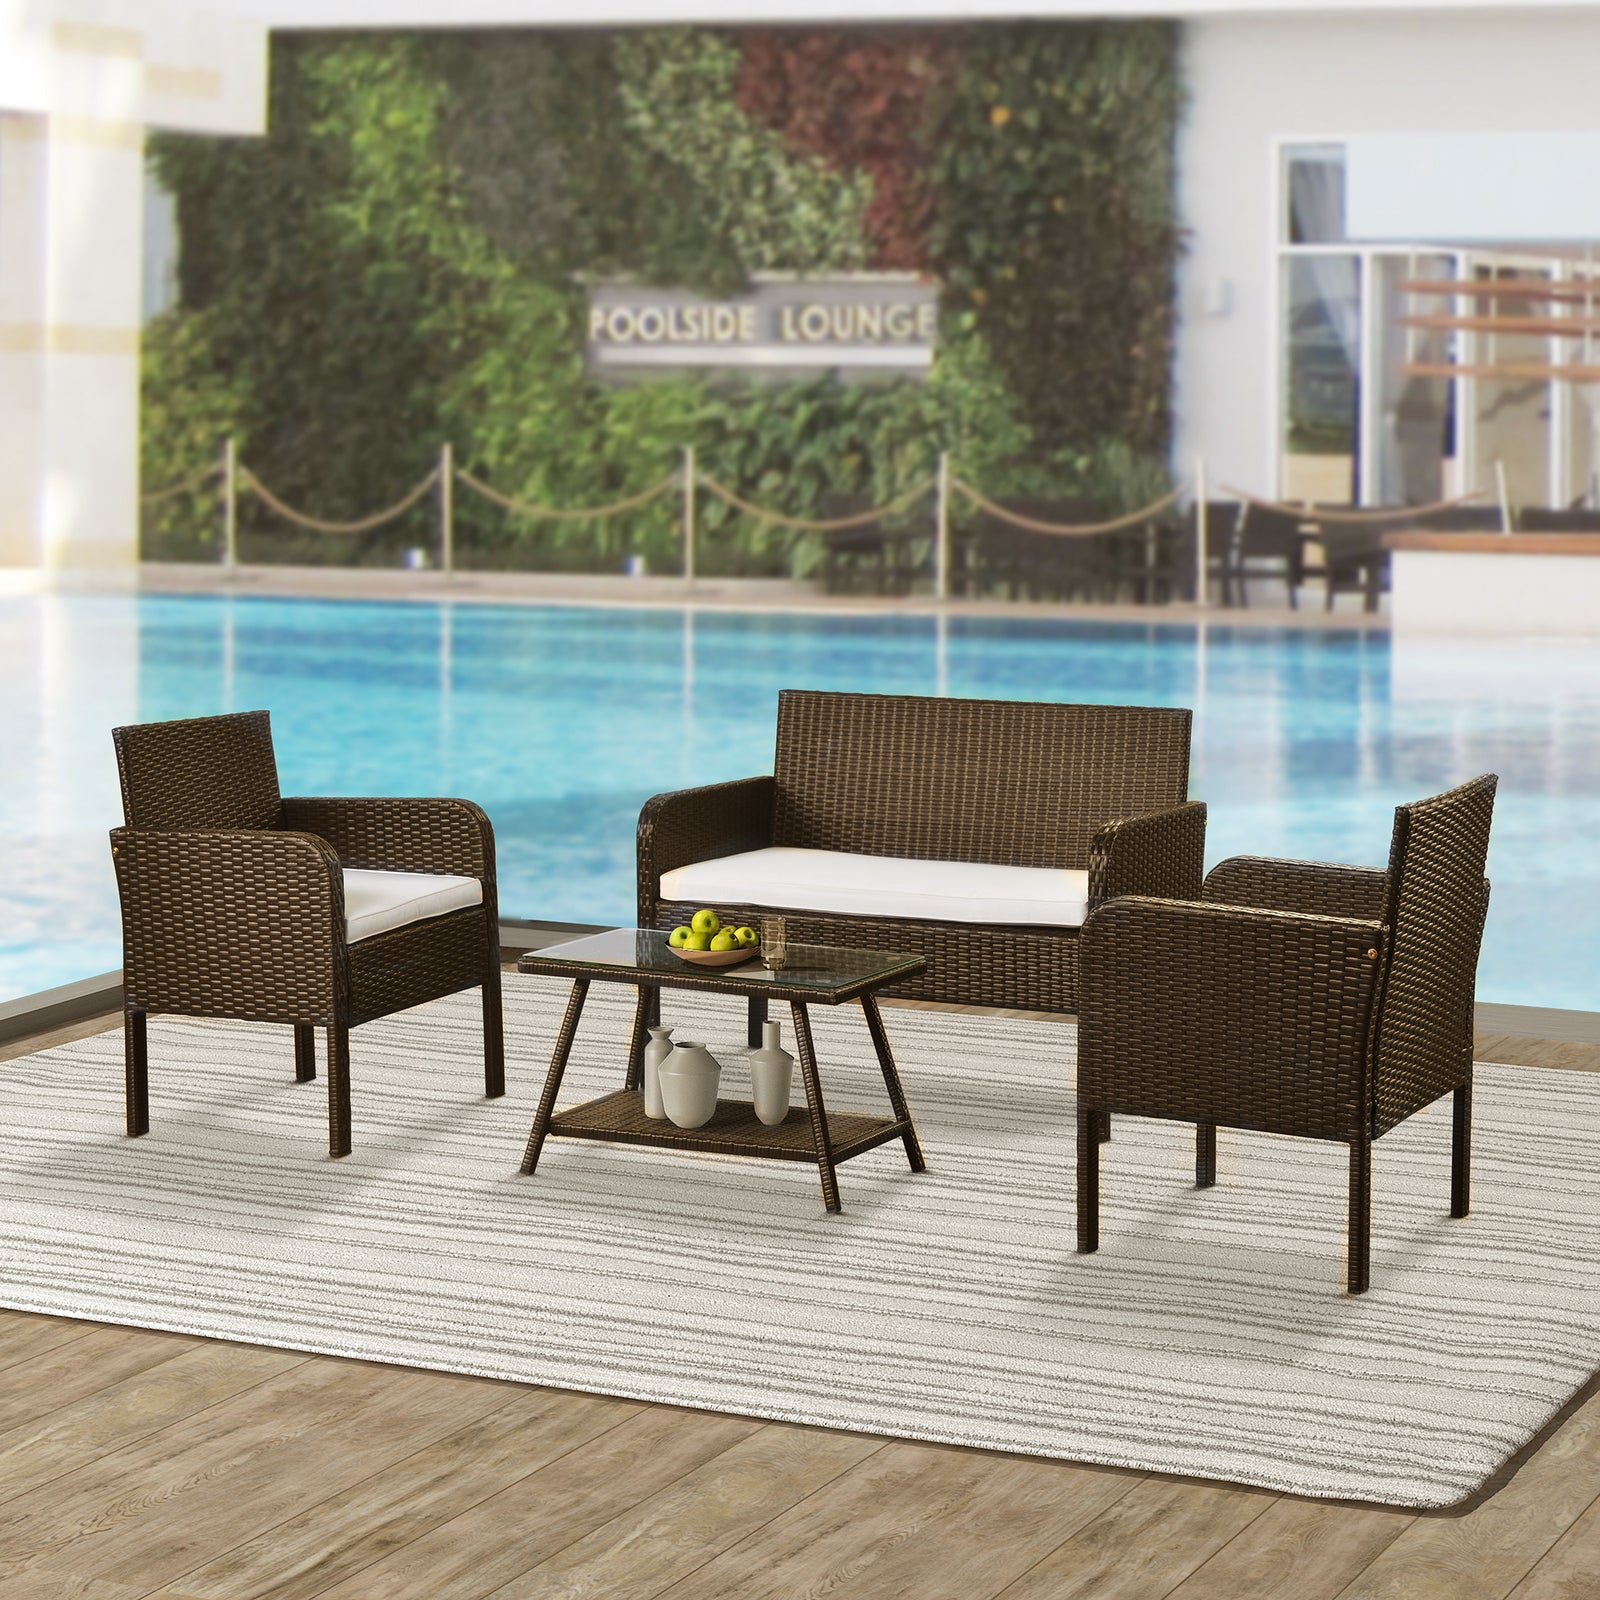 4 Counts - Rattan Sofa Seating Group with Cushions, Outdoor Rattan sofa Beige